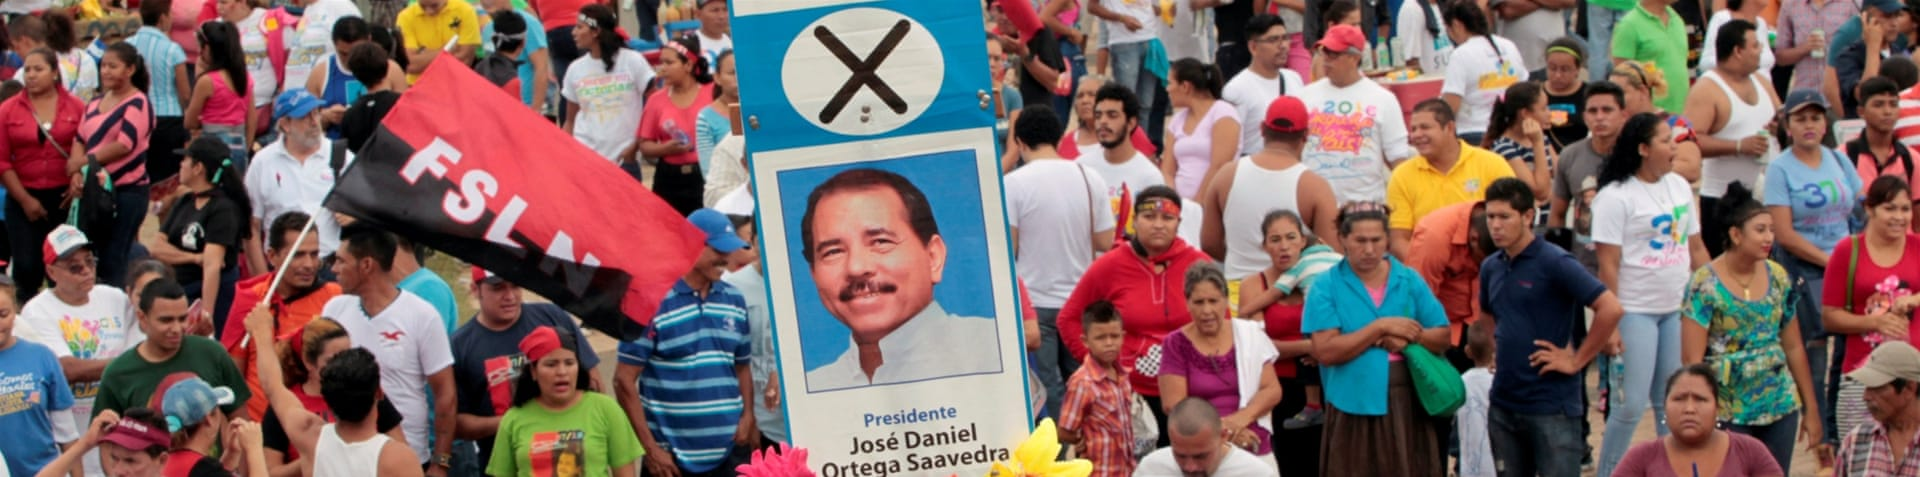 According to recent polls, Nicaragua's President Daniel Ortega has nearly 70 percent support [Oswaldo Rivas/Reuters]